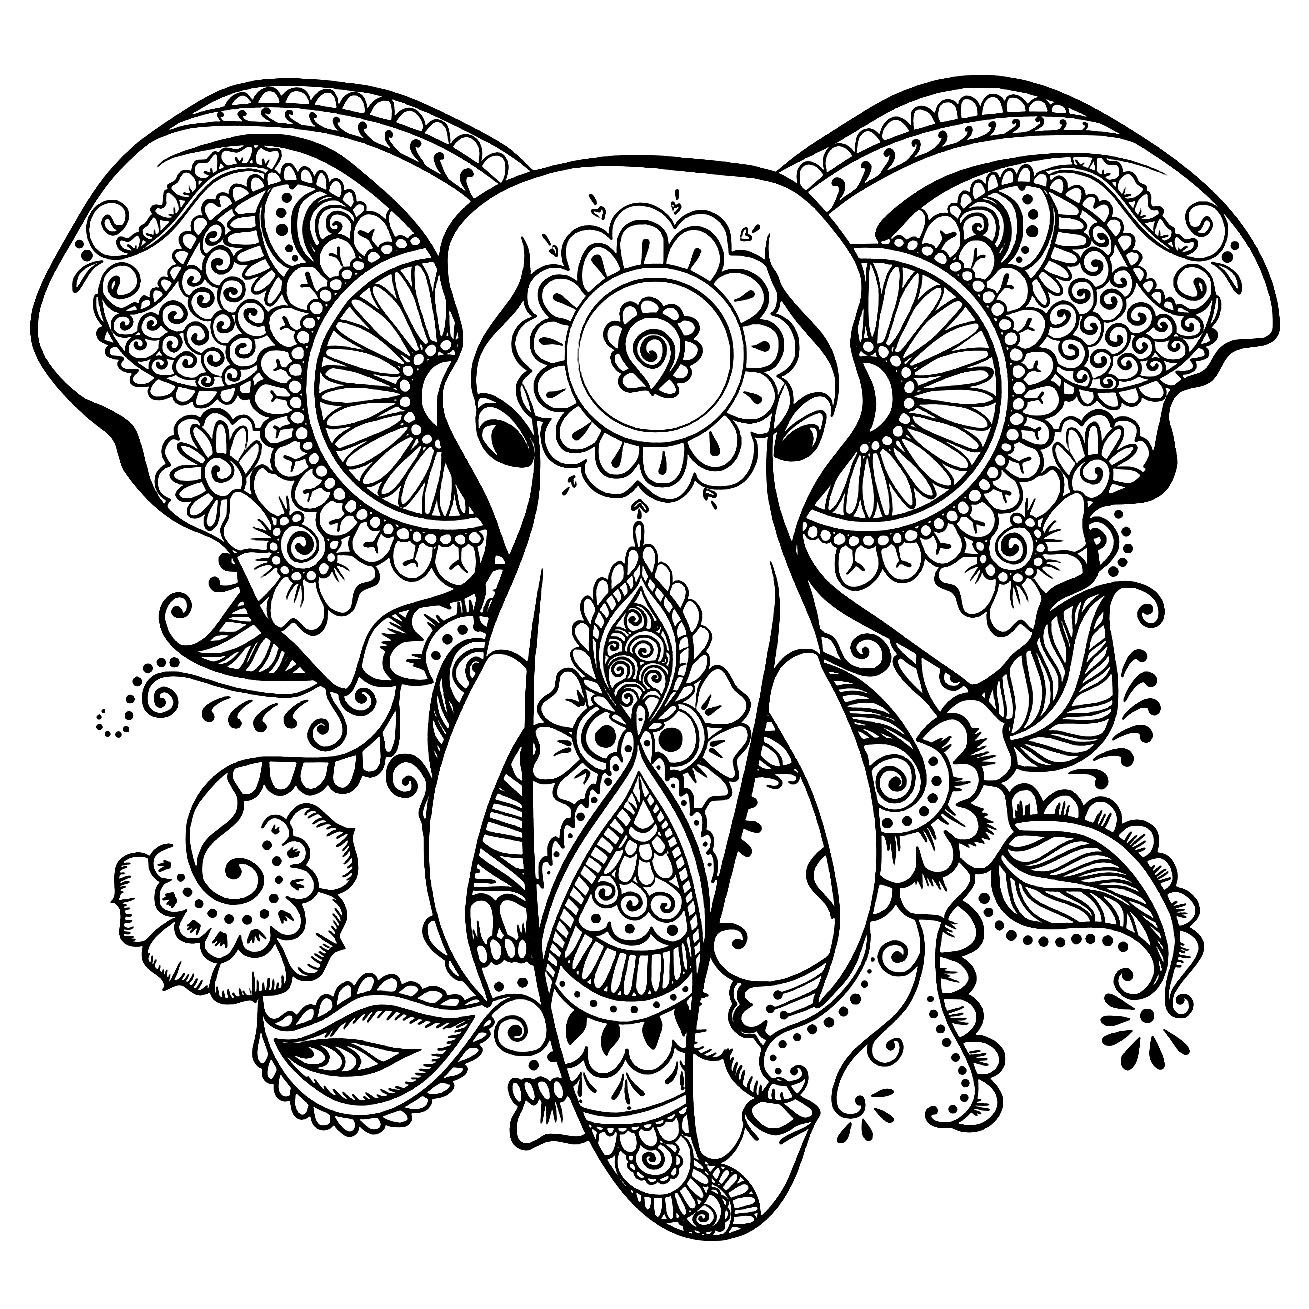 coloring pictures elephant elephants free to color for children elephants kids coloring elephant pictures